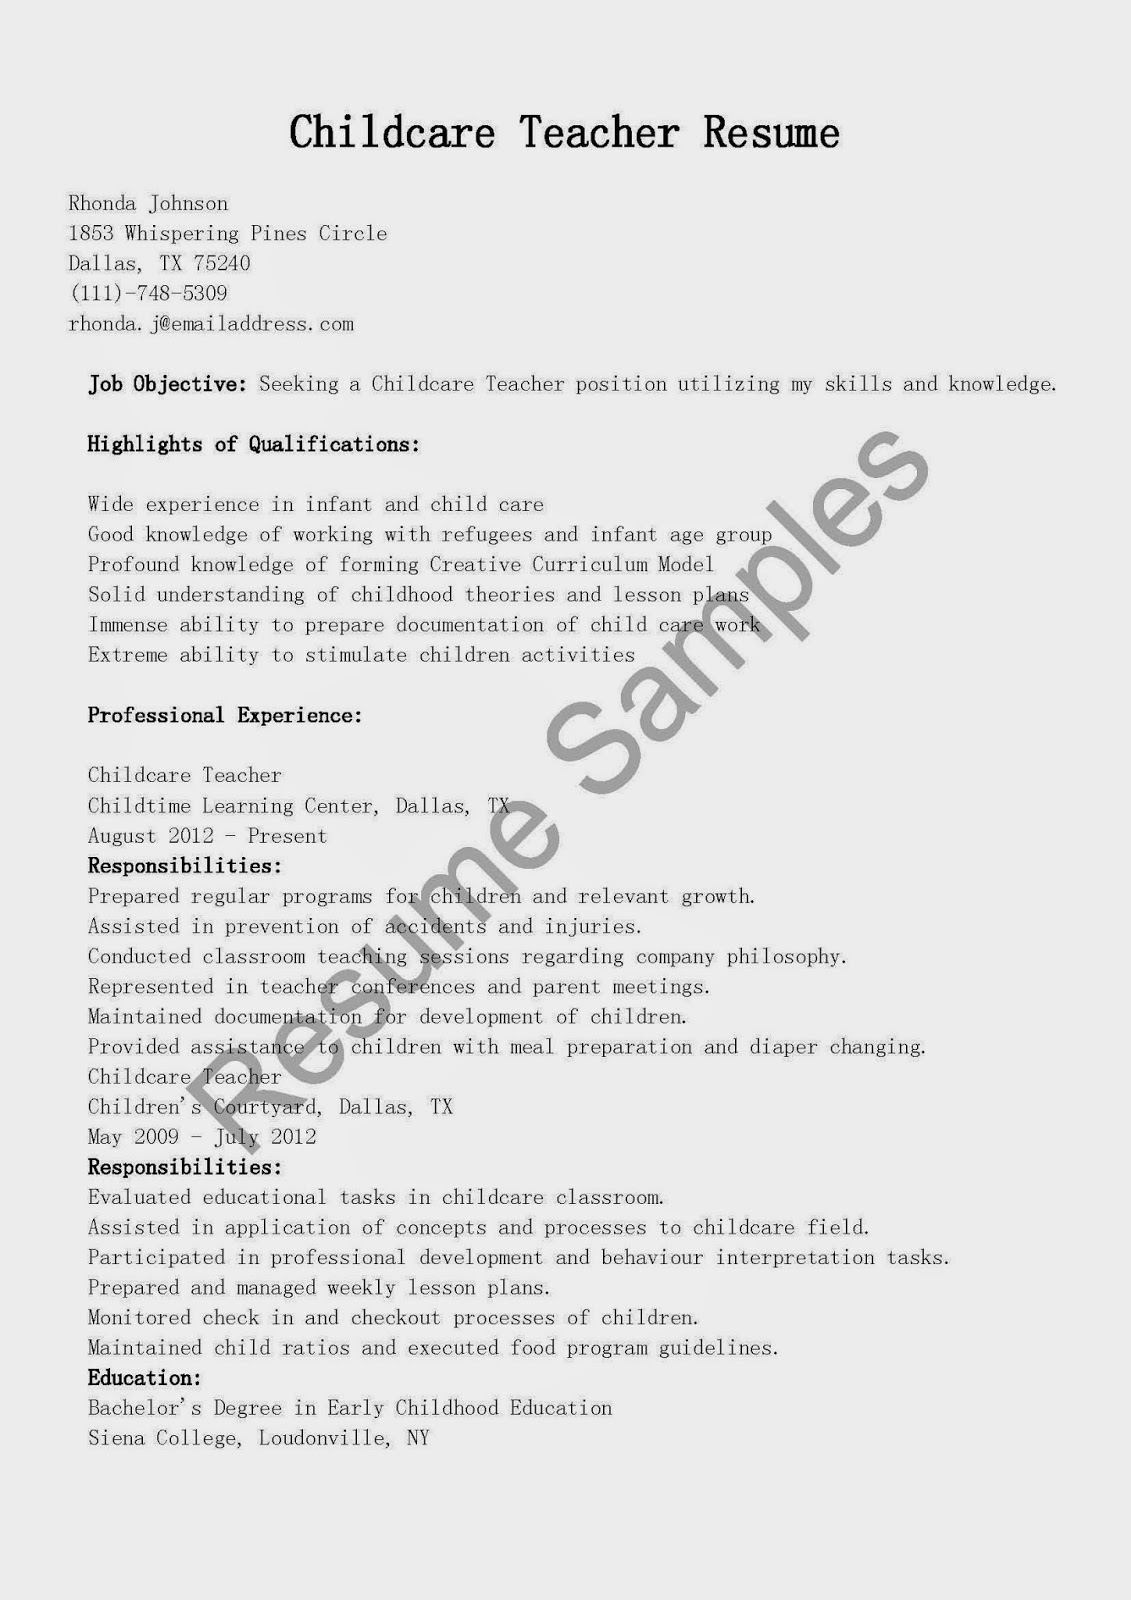 Resume Care Manager Free Resume Examples Compare Resume Guild For  Exceptional Children Modeling Resume Model Resume